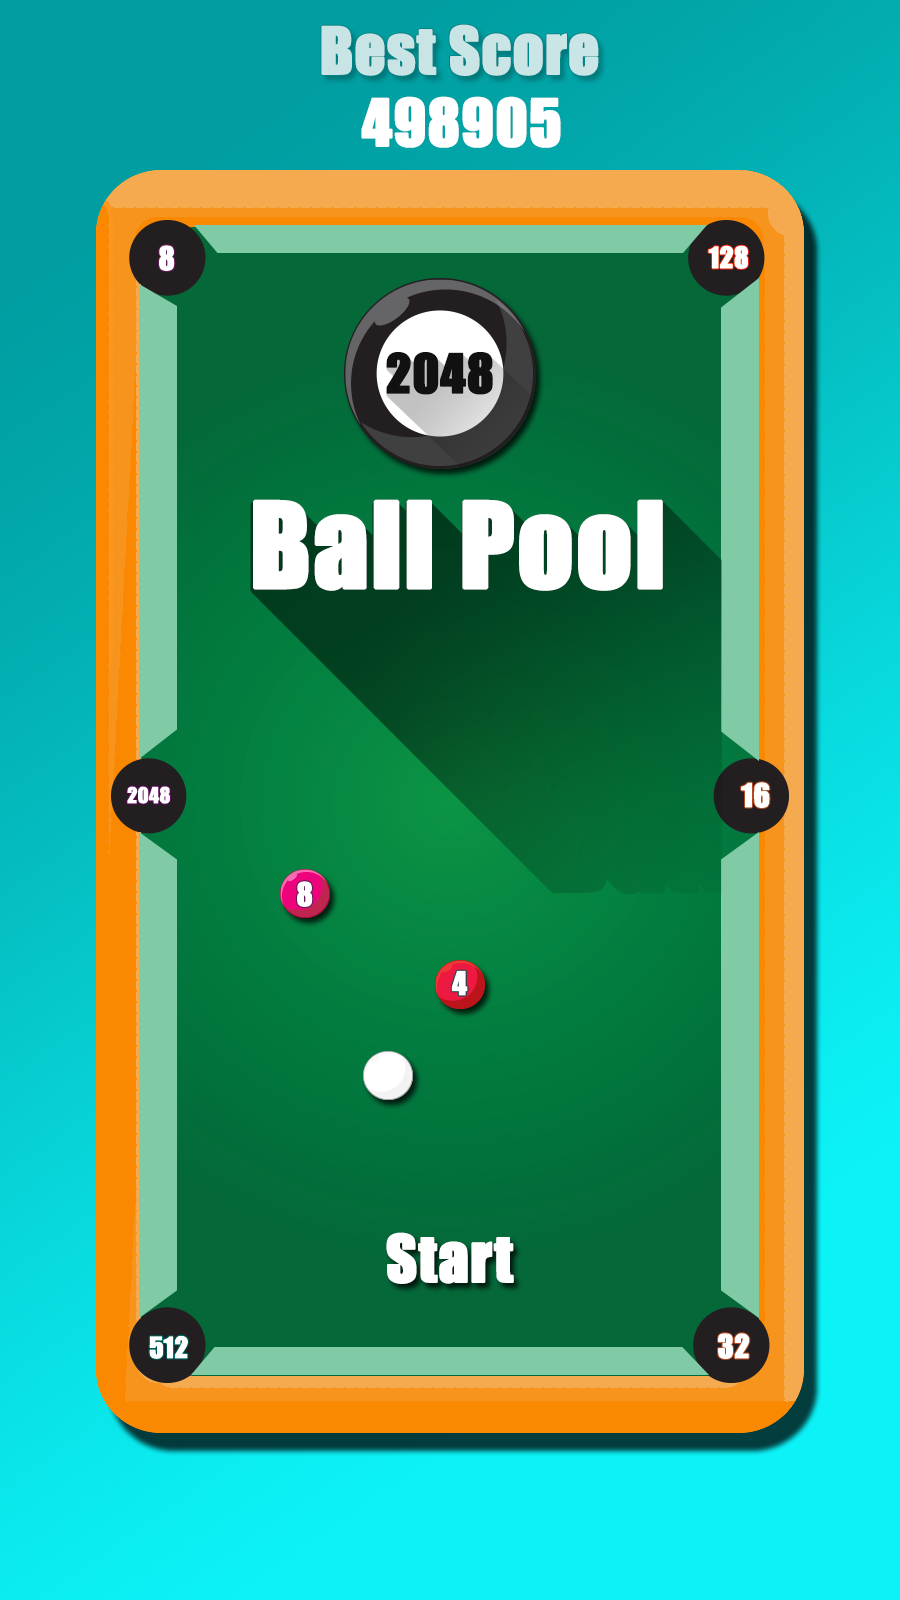 2048 Ball Pool (2048 ball billiards)